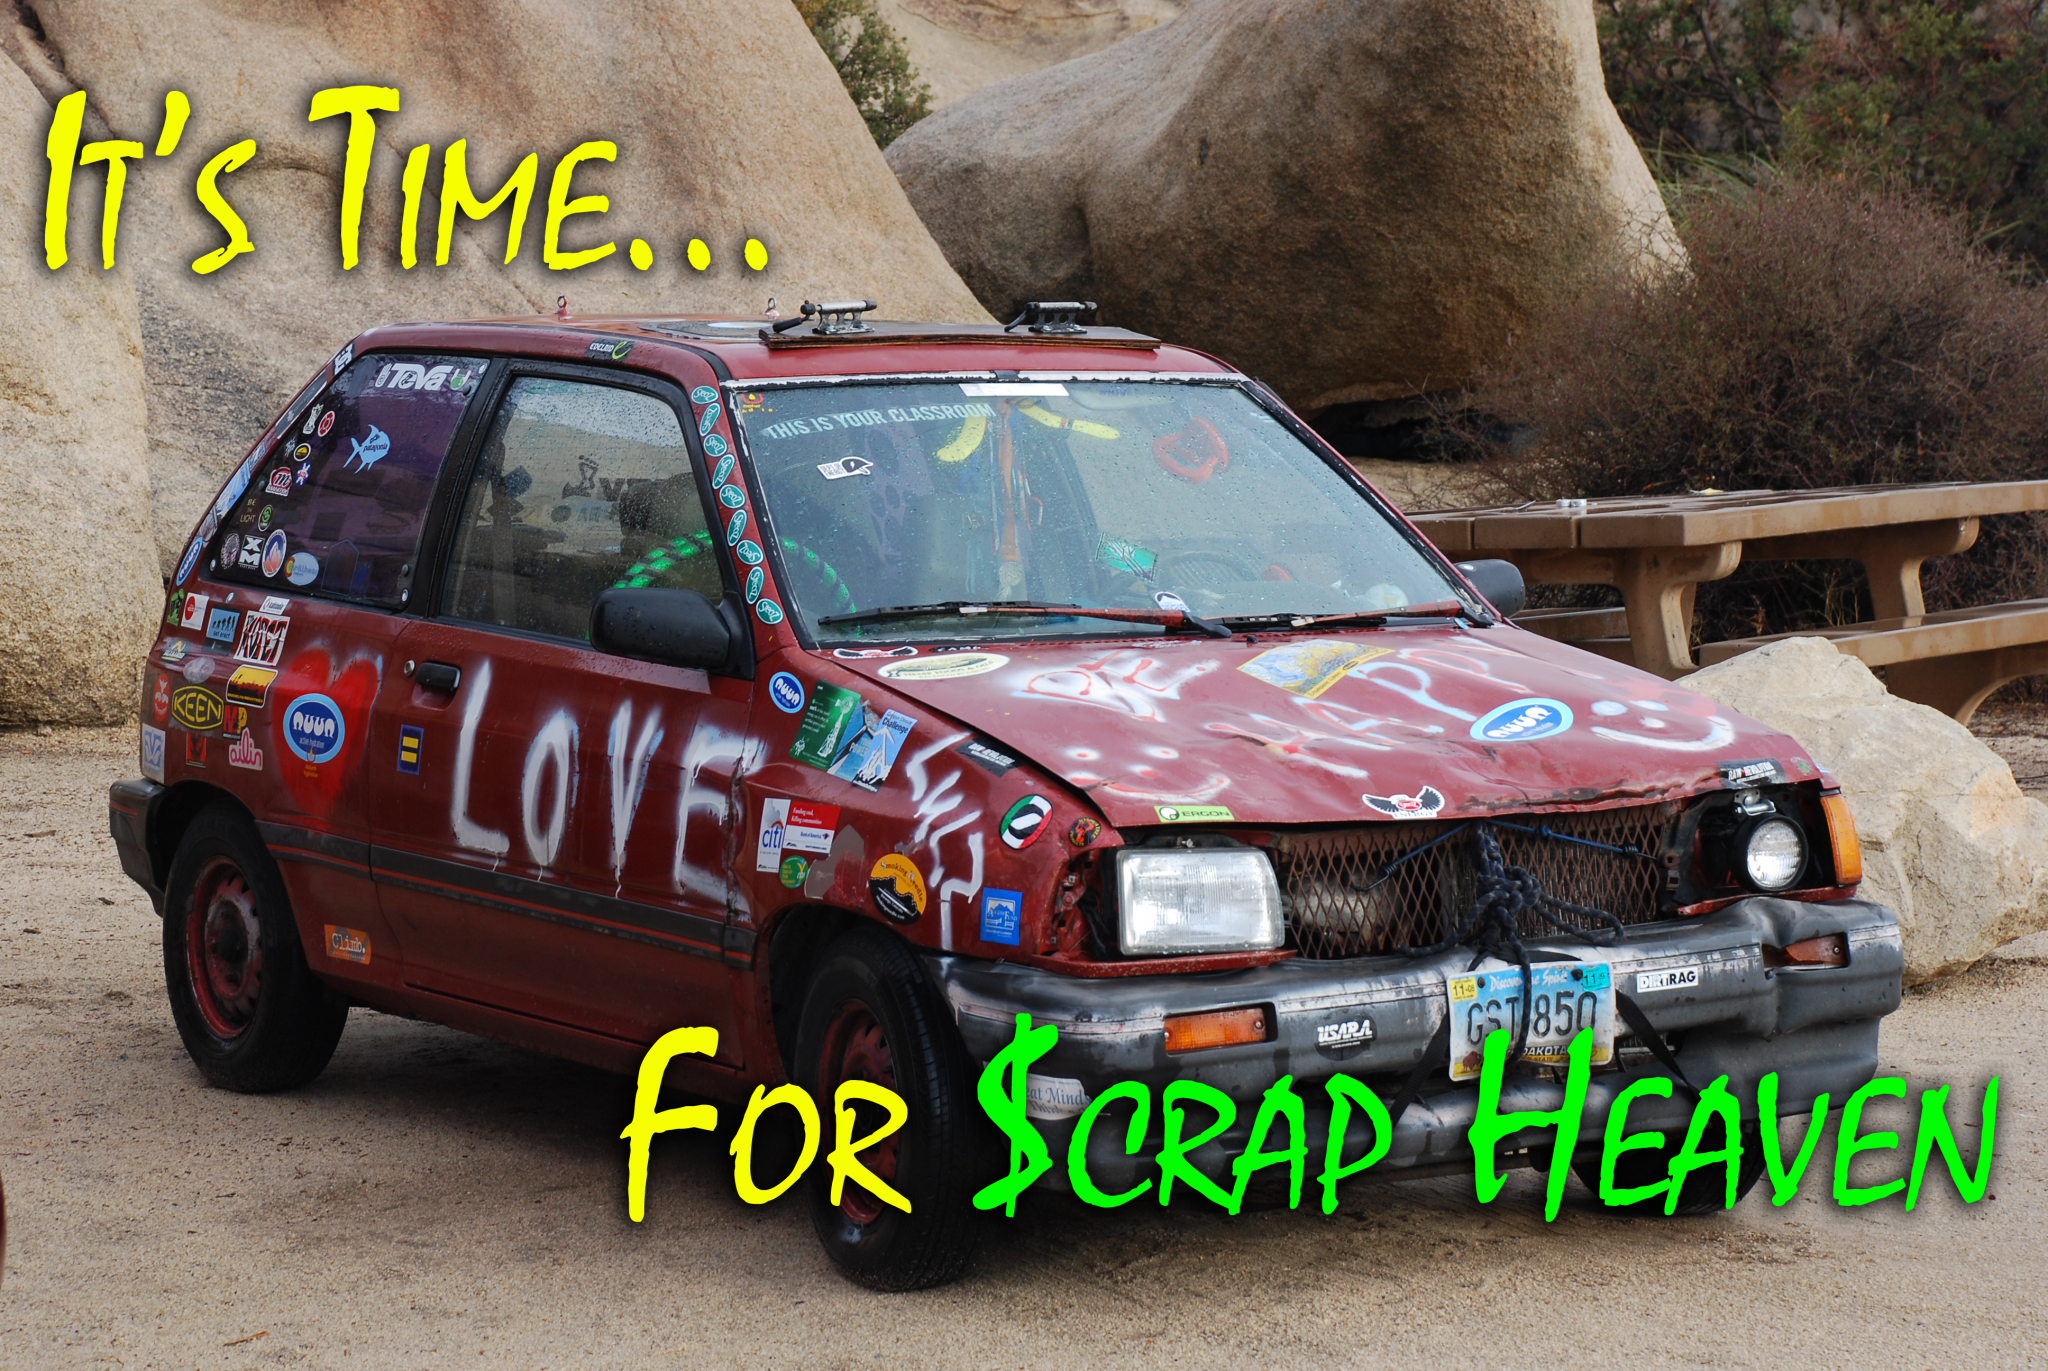 Face It, Your Car Is Ready For Scrap Heaven - iScrap App